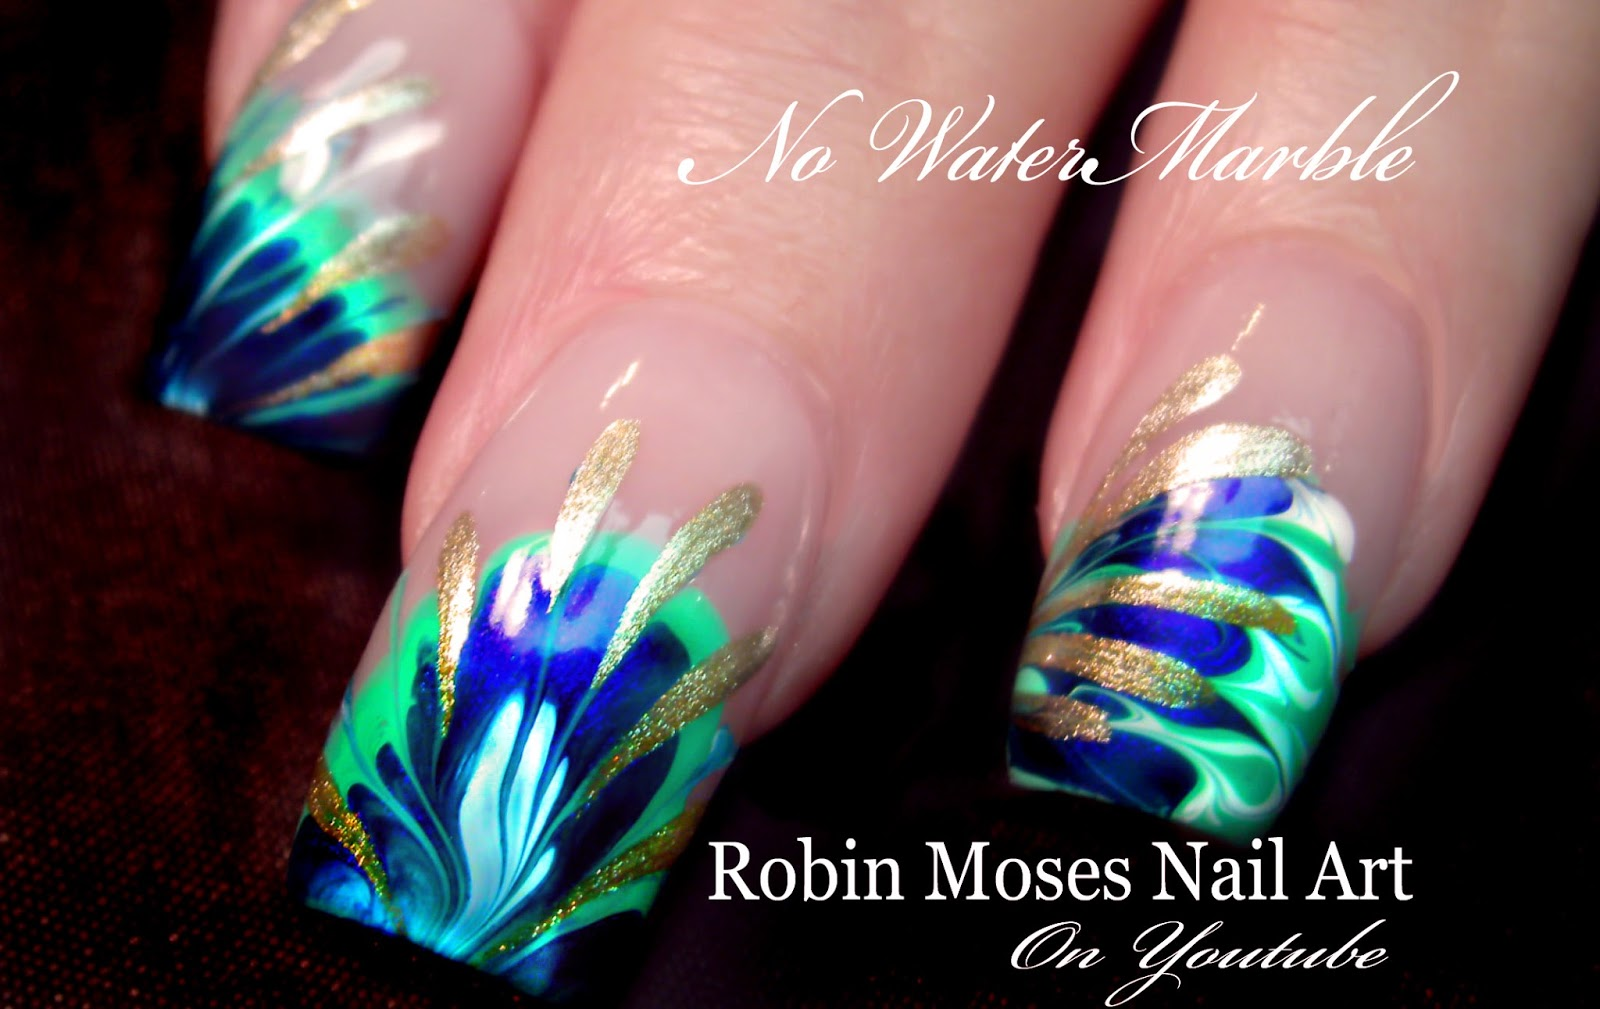 Moses Nail Art: 3 Different marble nail art without using no water